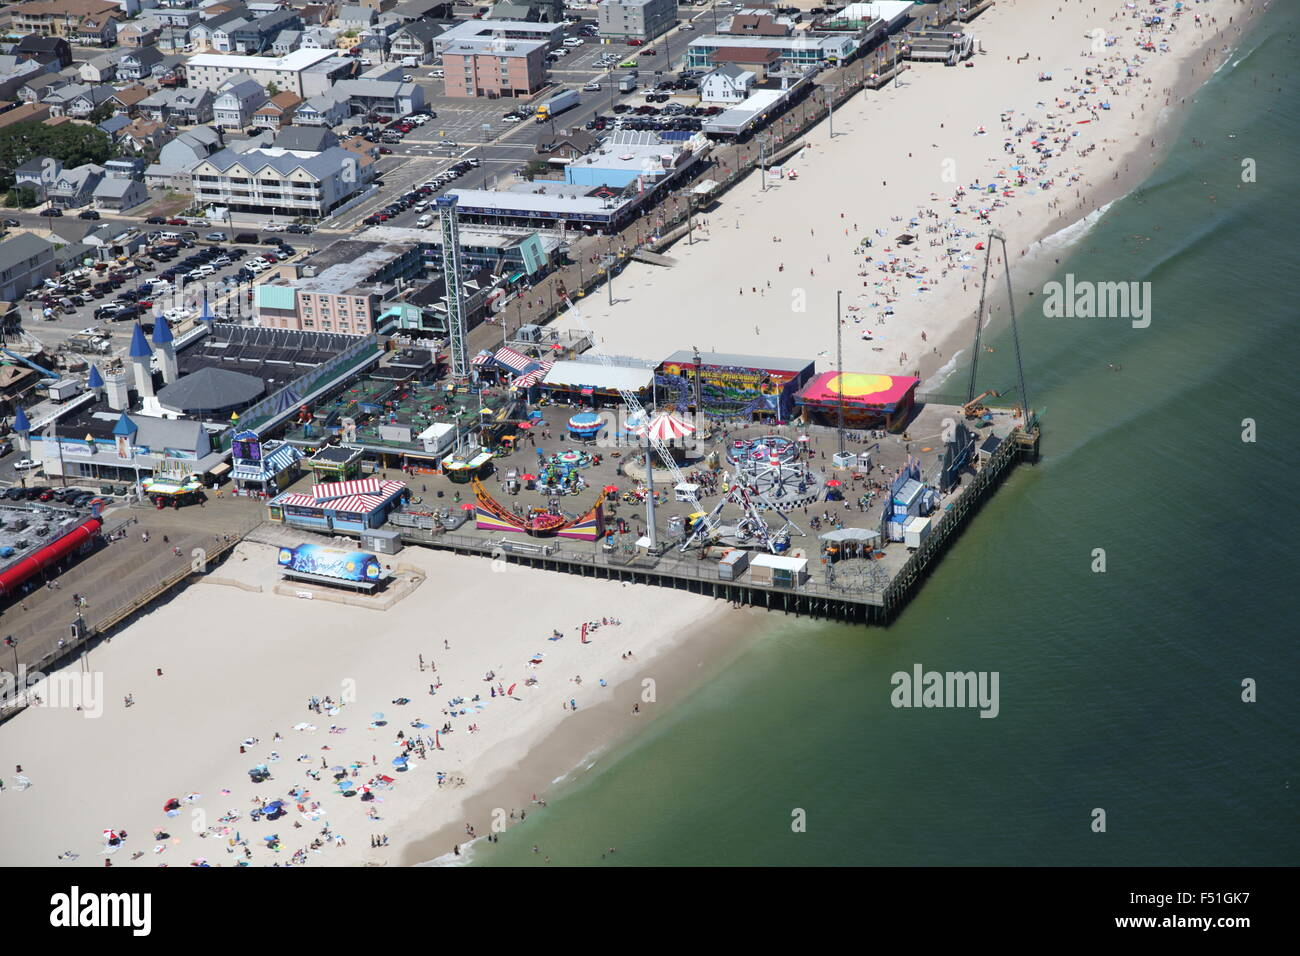 Aerial View Of Point Pleasant Beach, New Jersey Stock